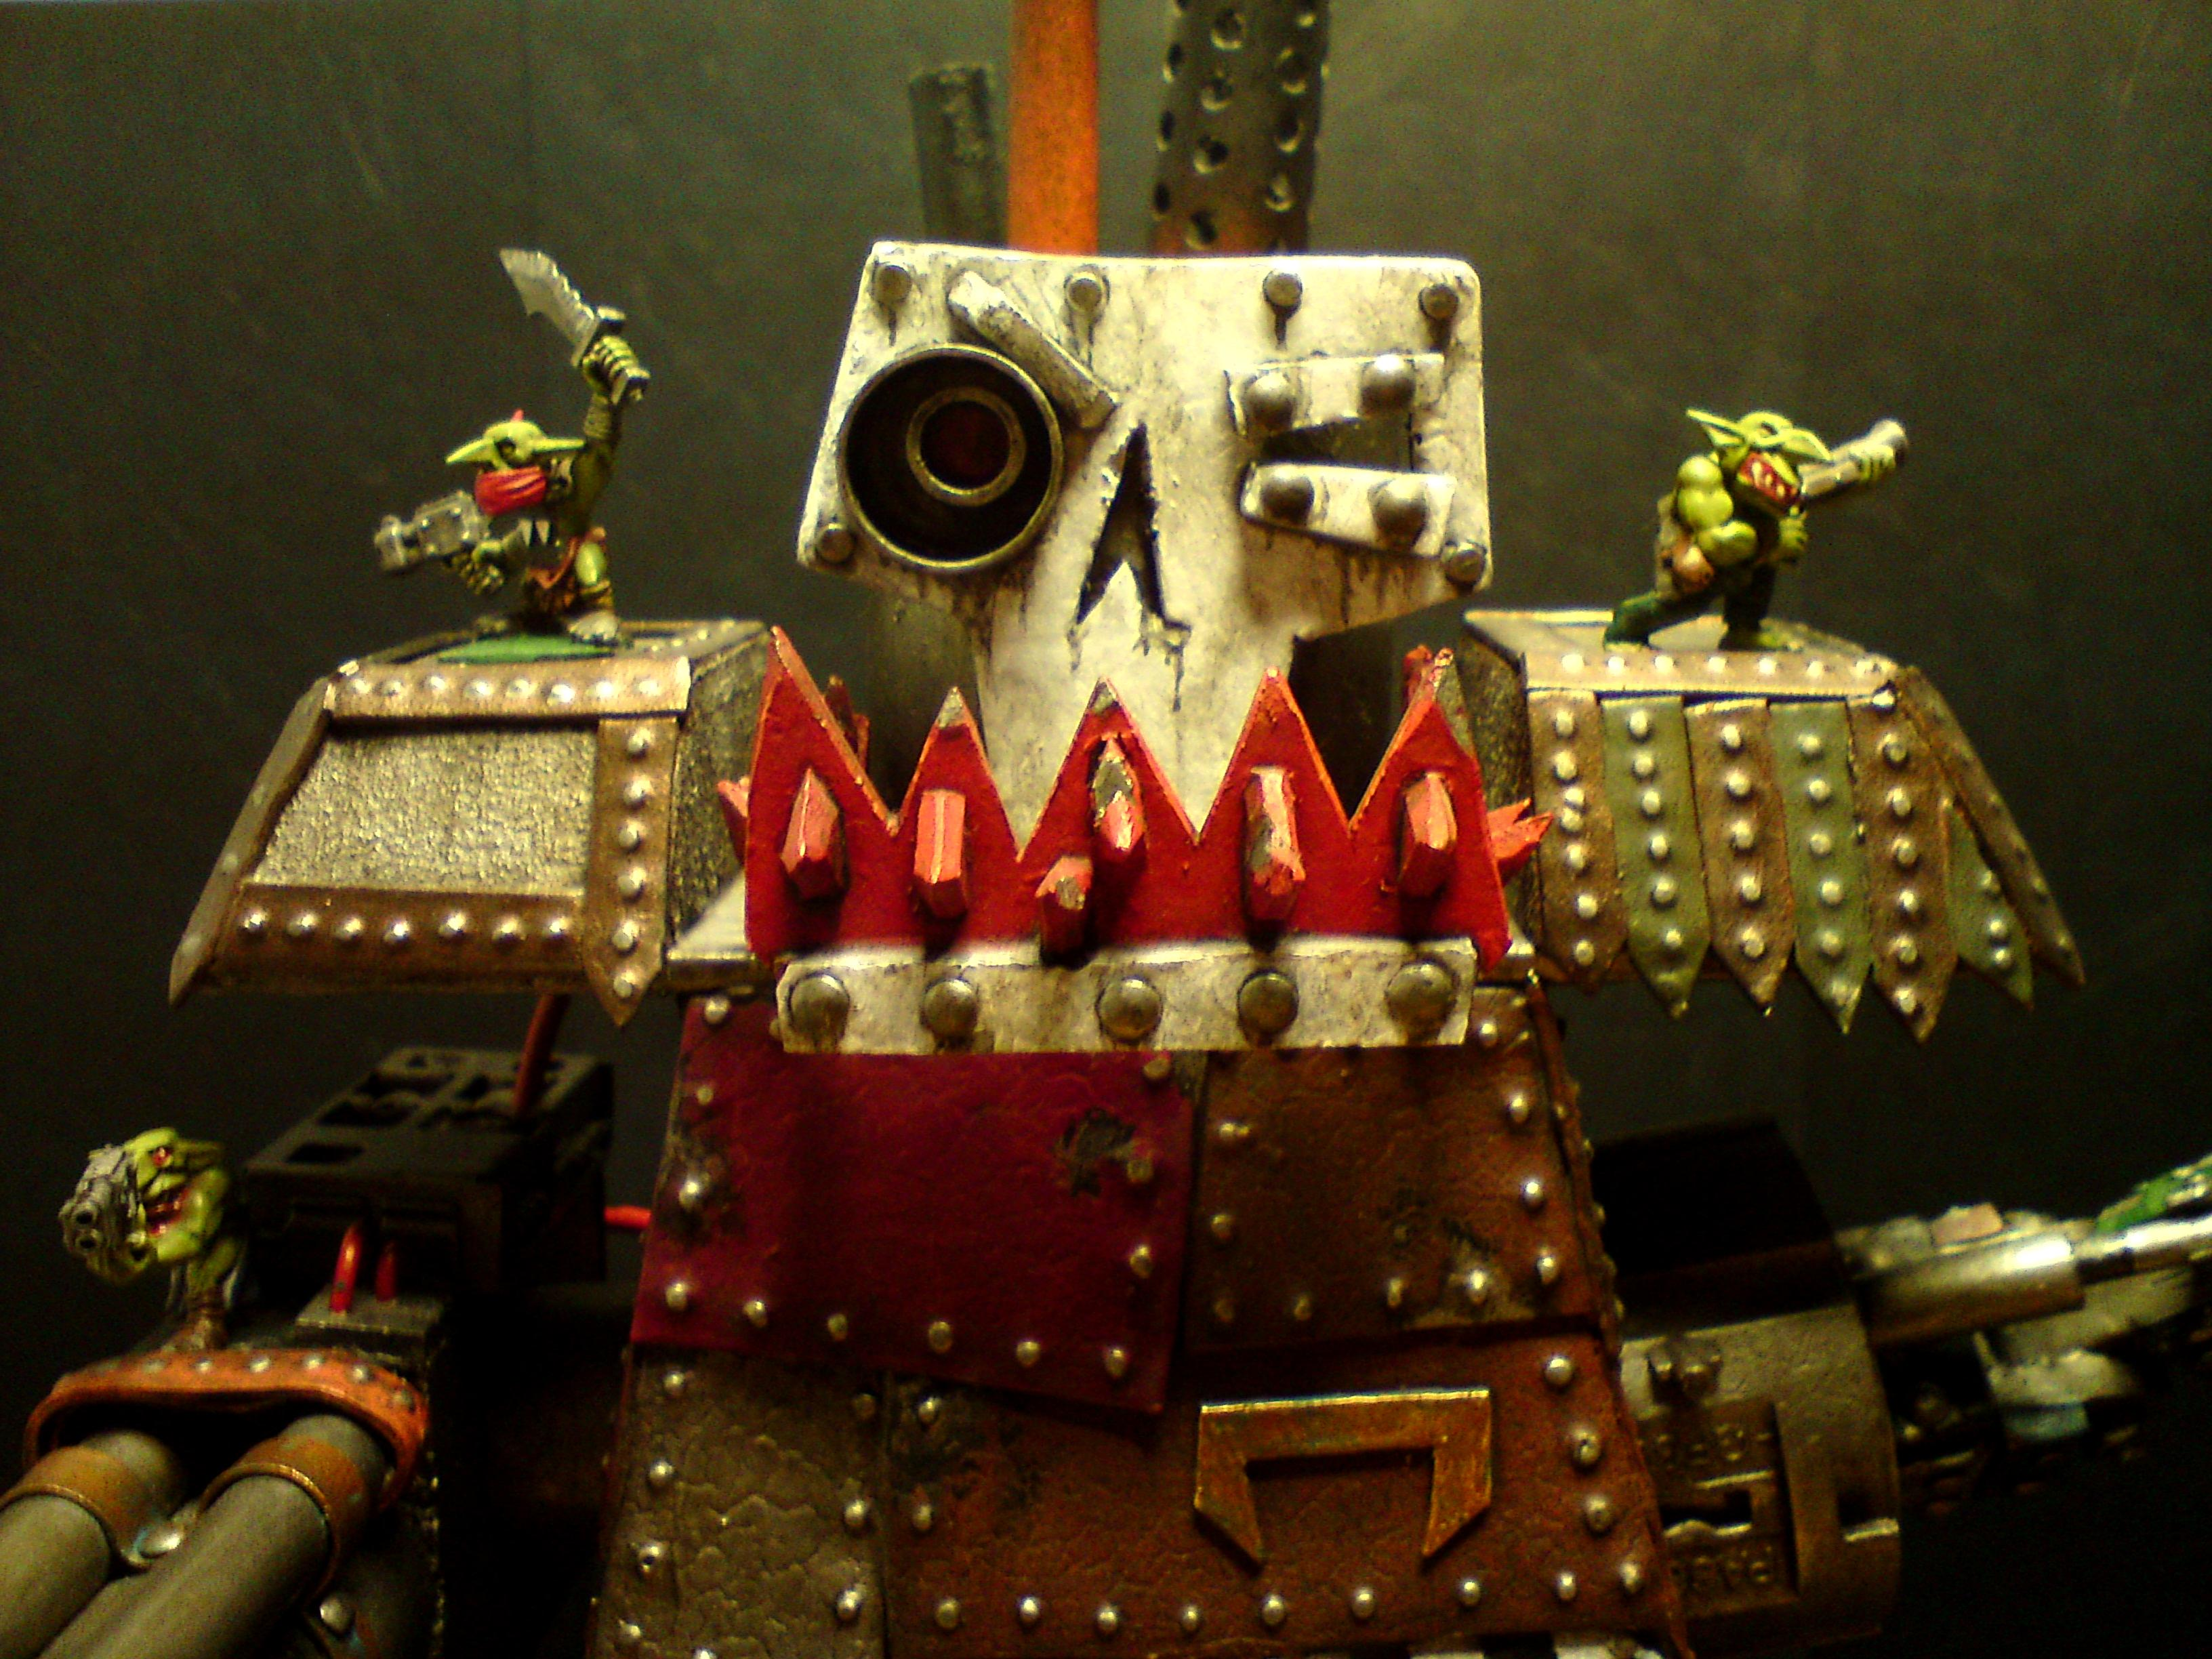 Stompa (face)